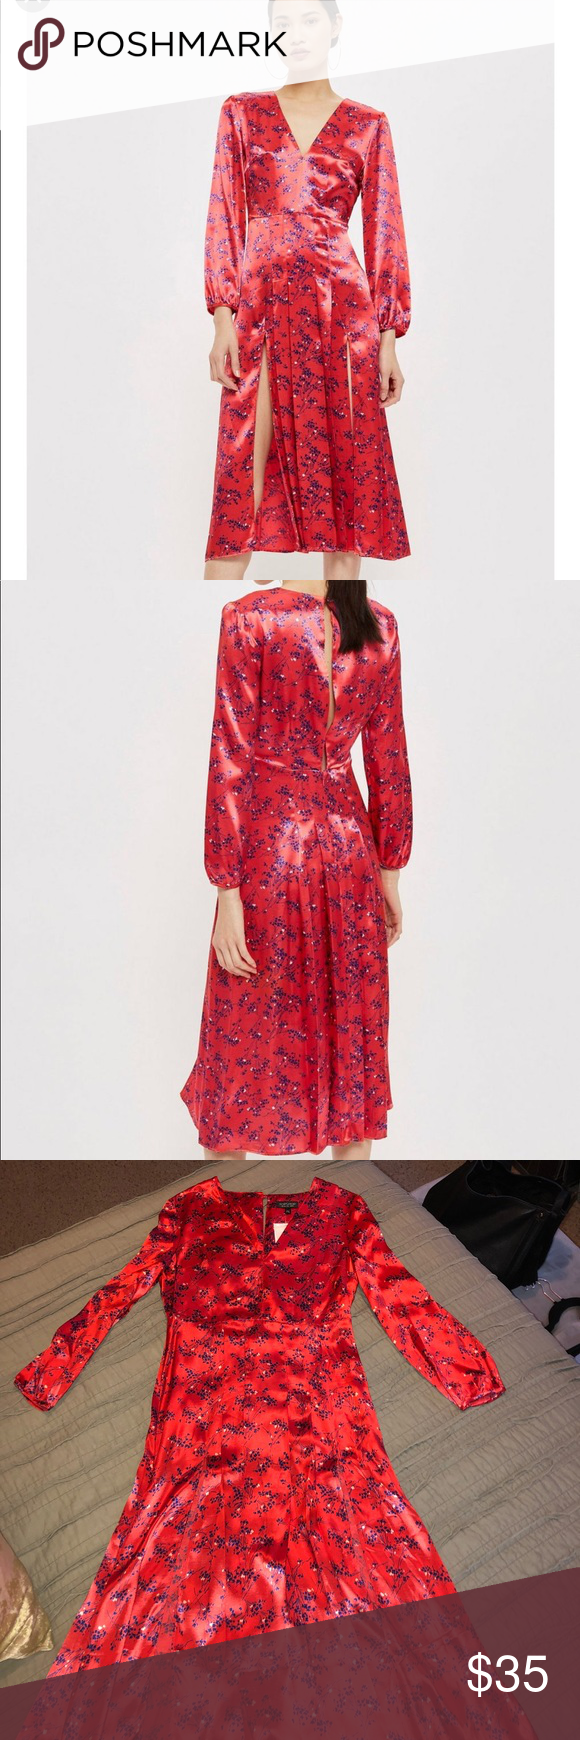 """7ecc3ff3a250 TOPSHOP Wispy Floral Print Midi Dress Floral print midi dress with satiny  sheen. V neck top with pleated side slit skirt. 48"""" length."""